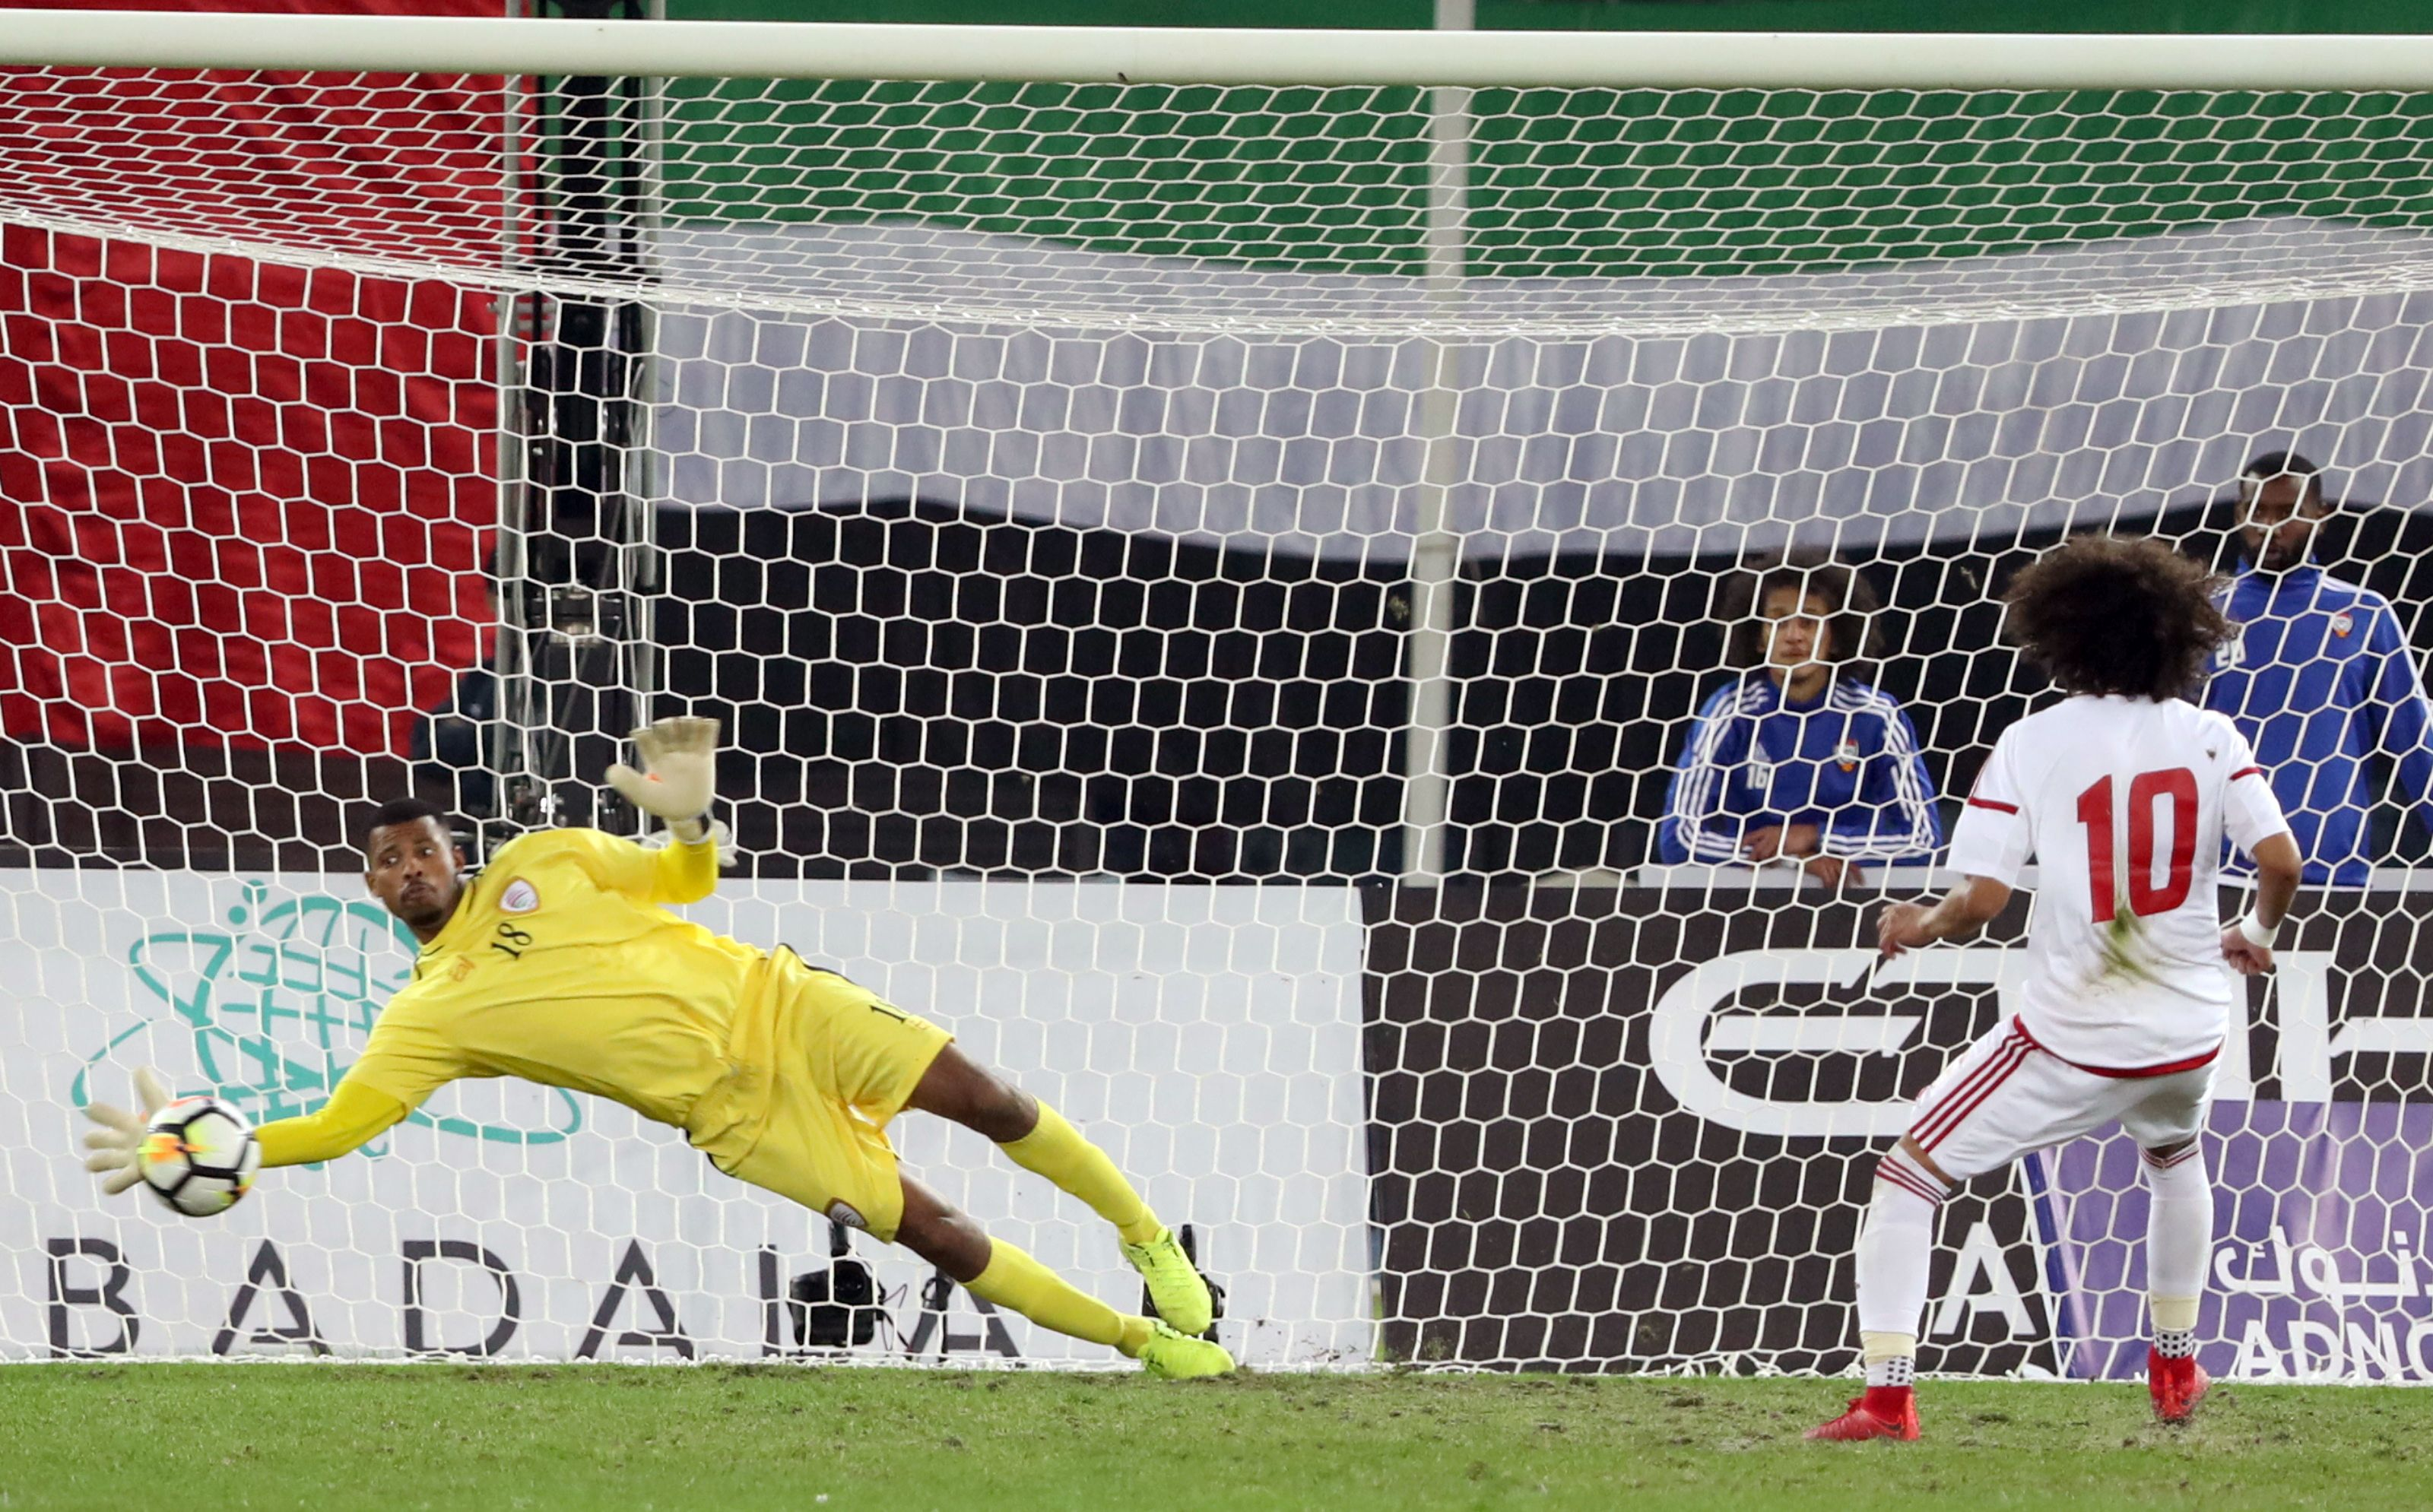 Bad aim: Abdulrahman against Oman at the Gulf Cup.